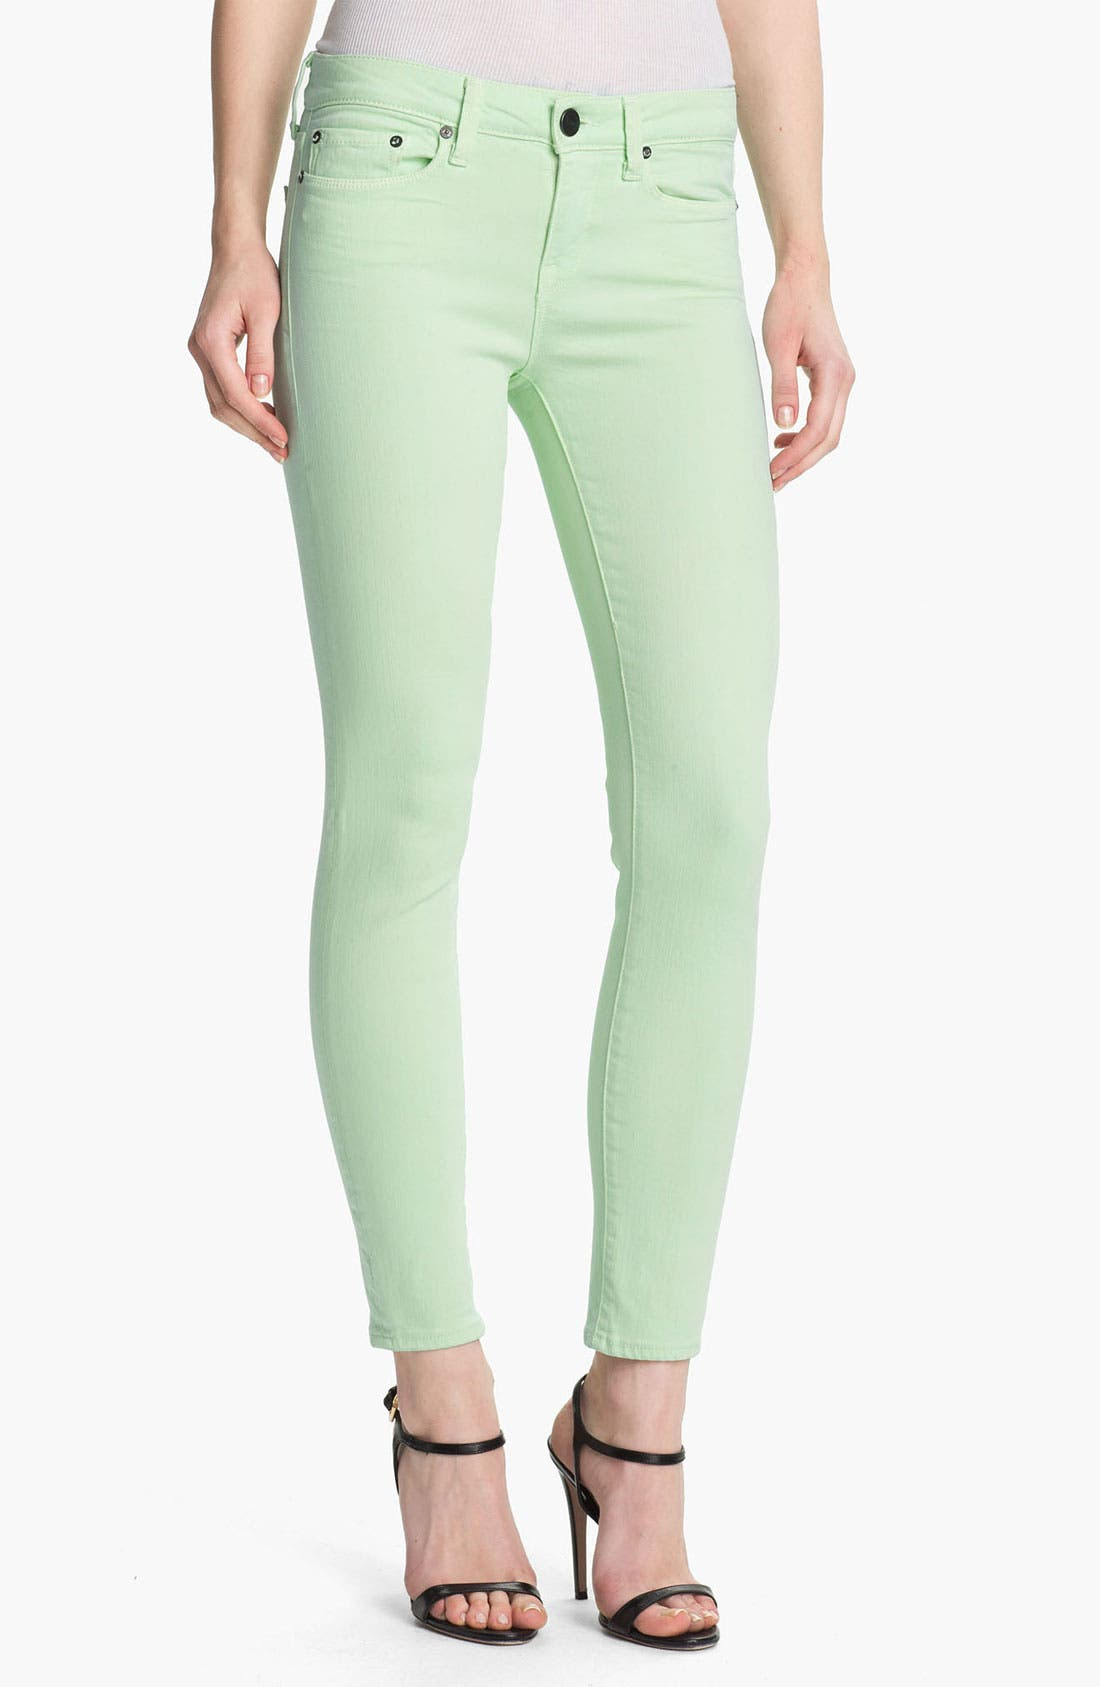 Alternate Image 1 Selected - Vince Colored Skinny Stretch Ankle Jeans (Light Mint)